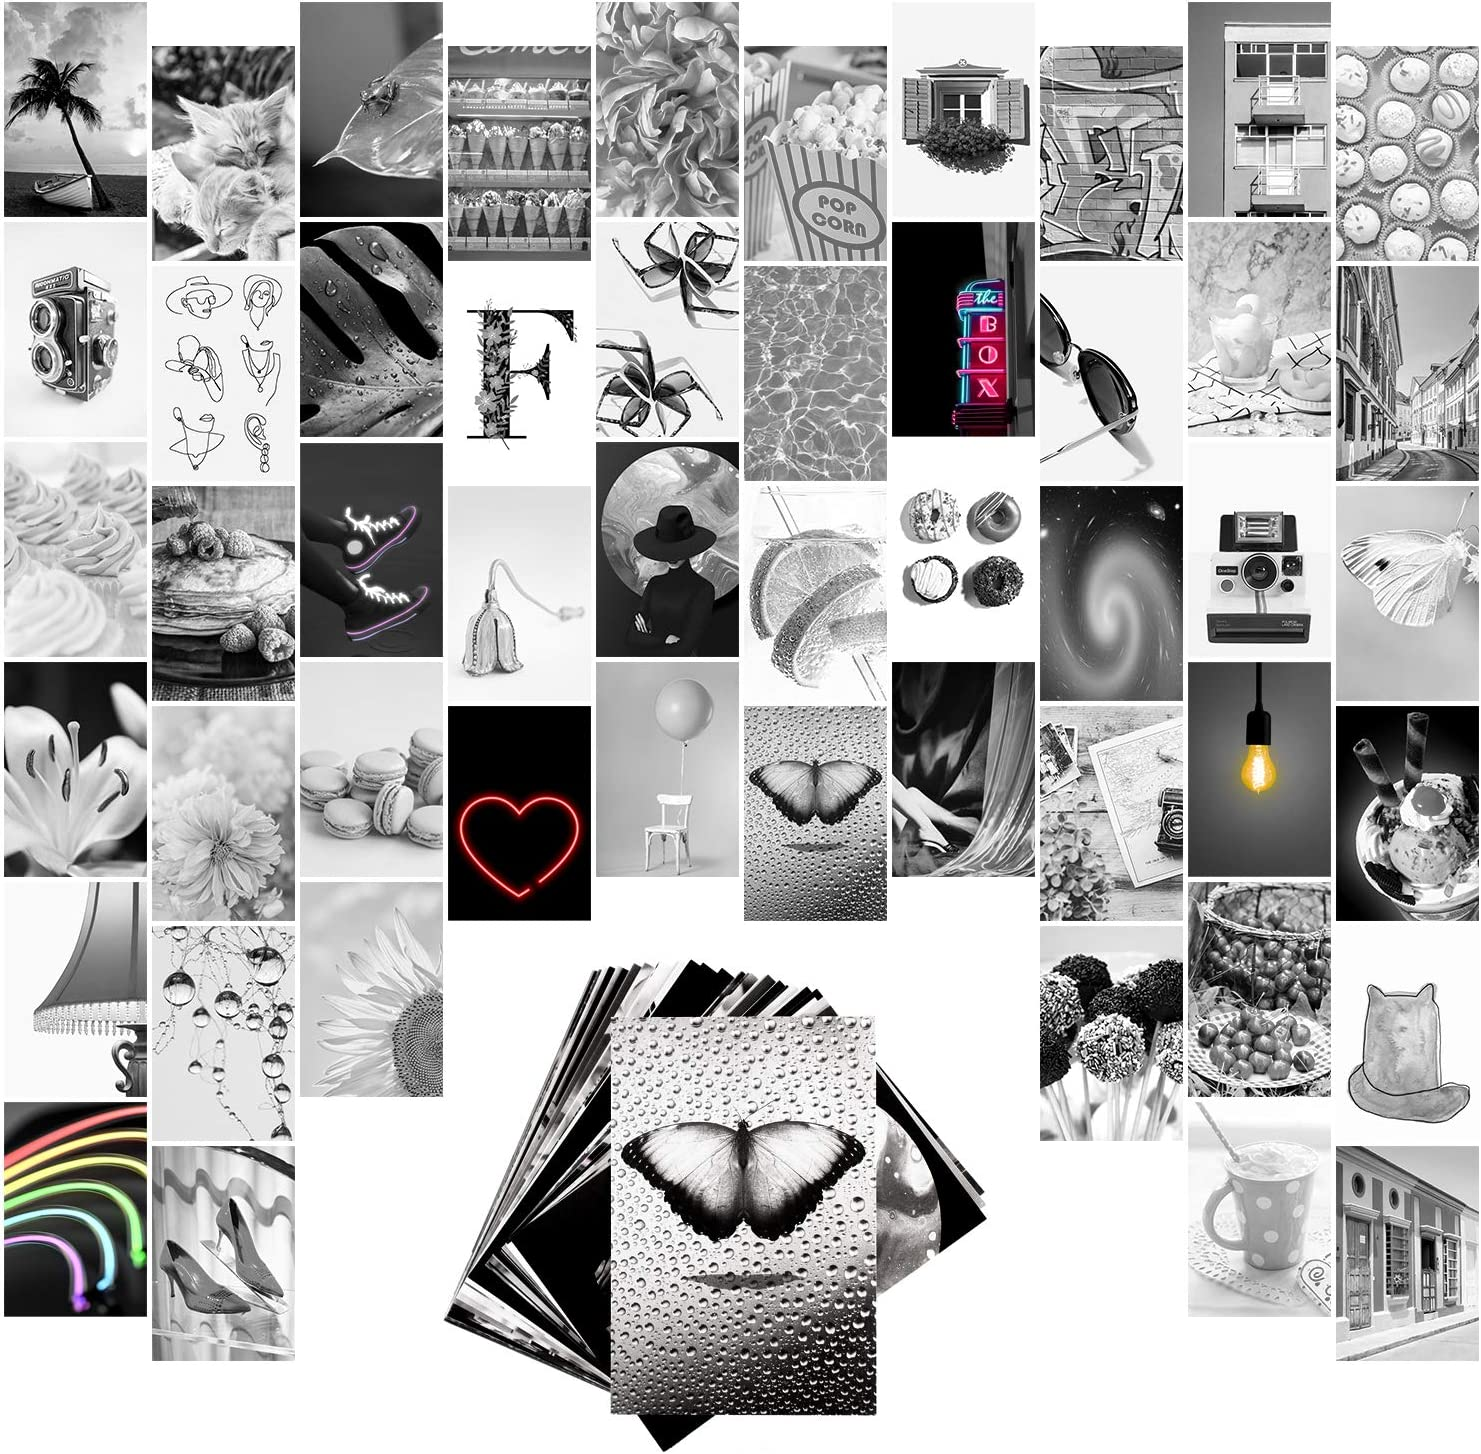 WOOBEE Black and White Wall Collage Kit Indie Bedroom Decor 50 Aesthetic Pictures, Teen Room VSCO Art Posters 4x6 inch Dorm Photo Collection